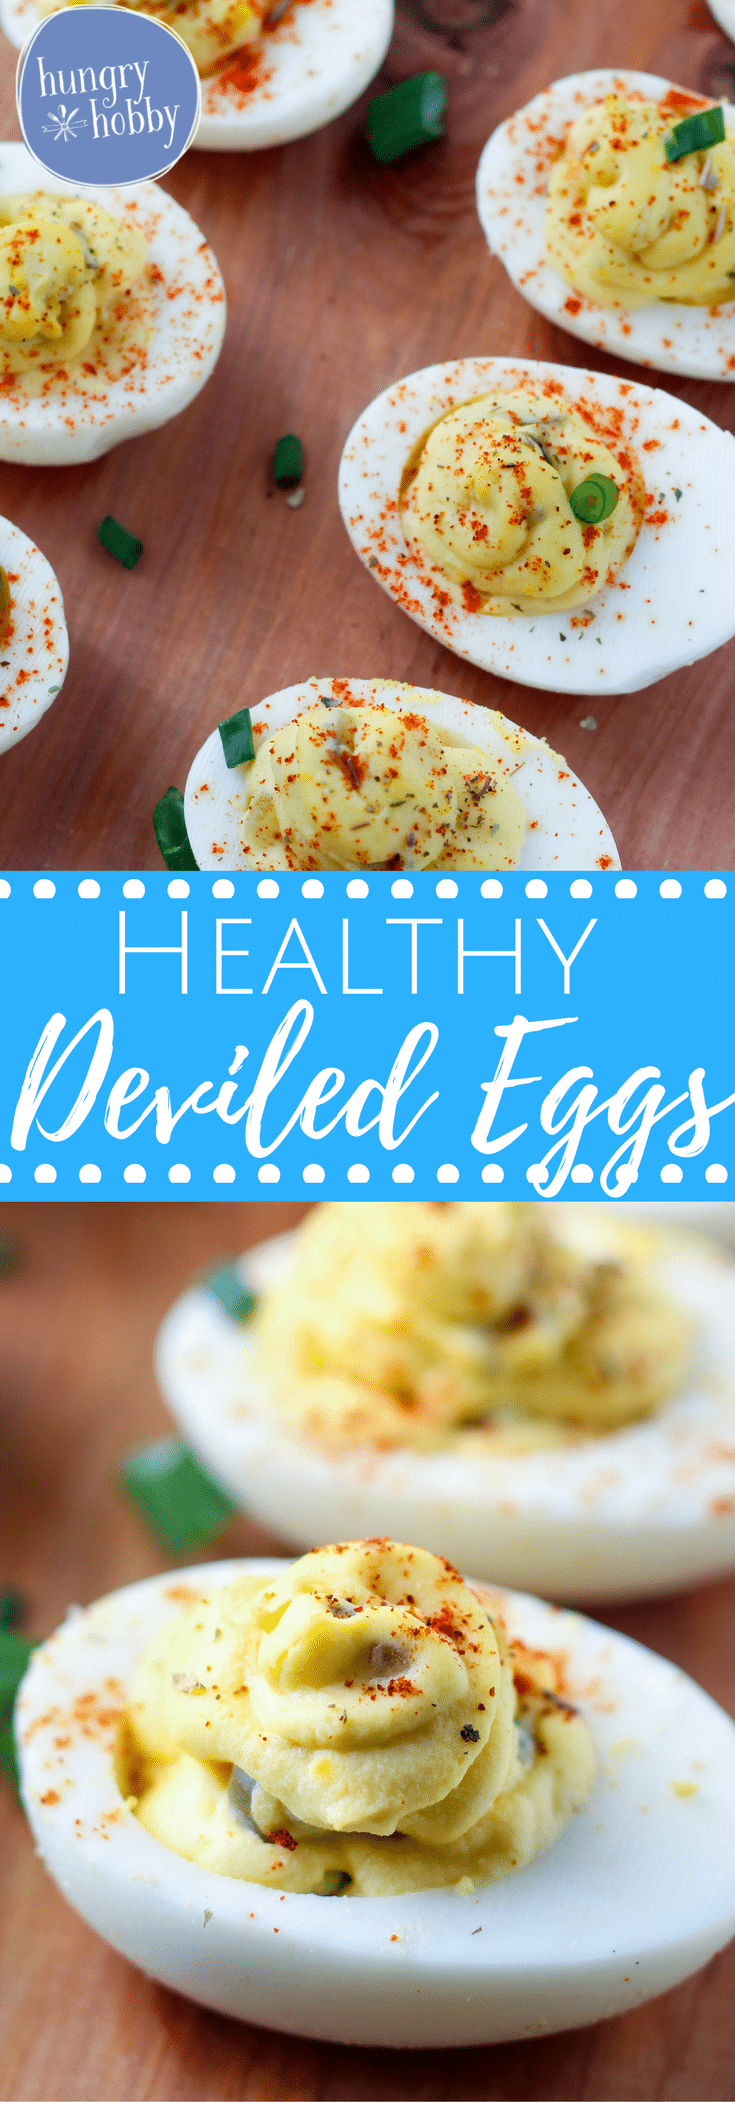 Healthy Deviled Eggs have a pillowy bed of flavorful tangy yolk on top a crisp cold shell, the perfect lighter version of this party favorite!  (No Yogurt)